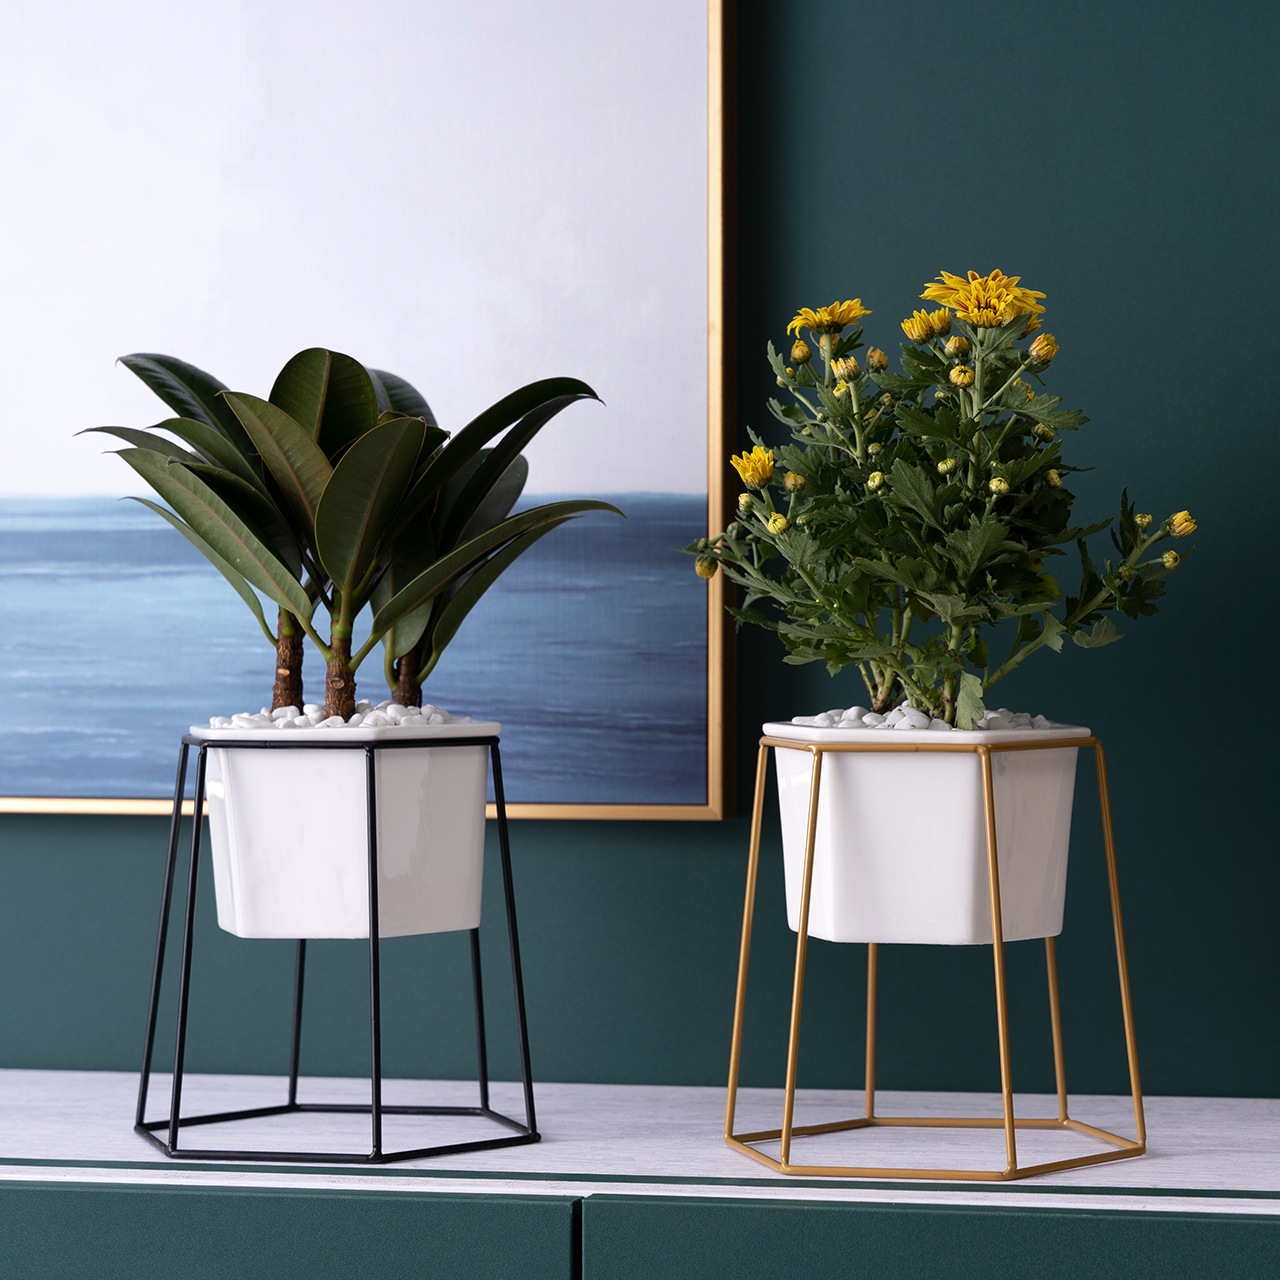 Hexagonal Plant Pot with Frame for Indoors